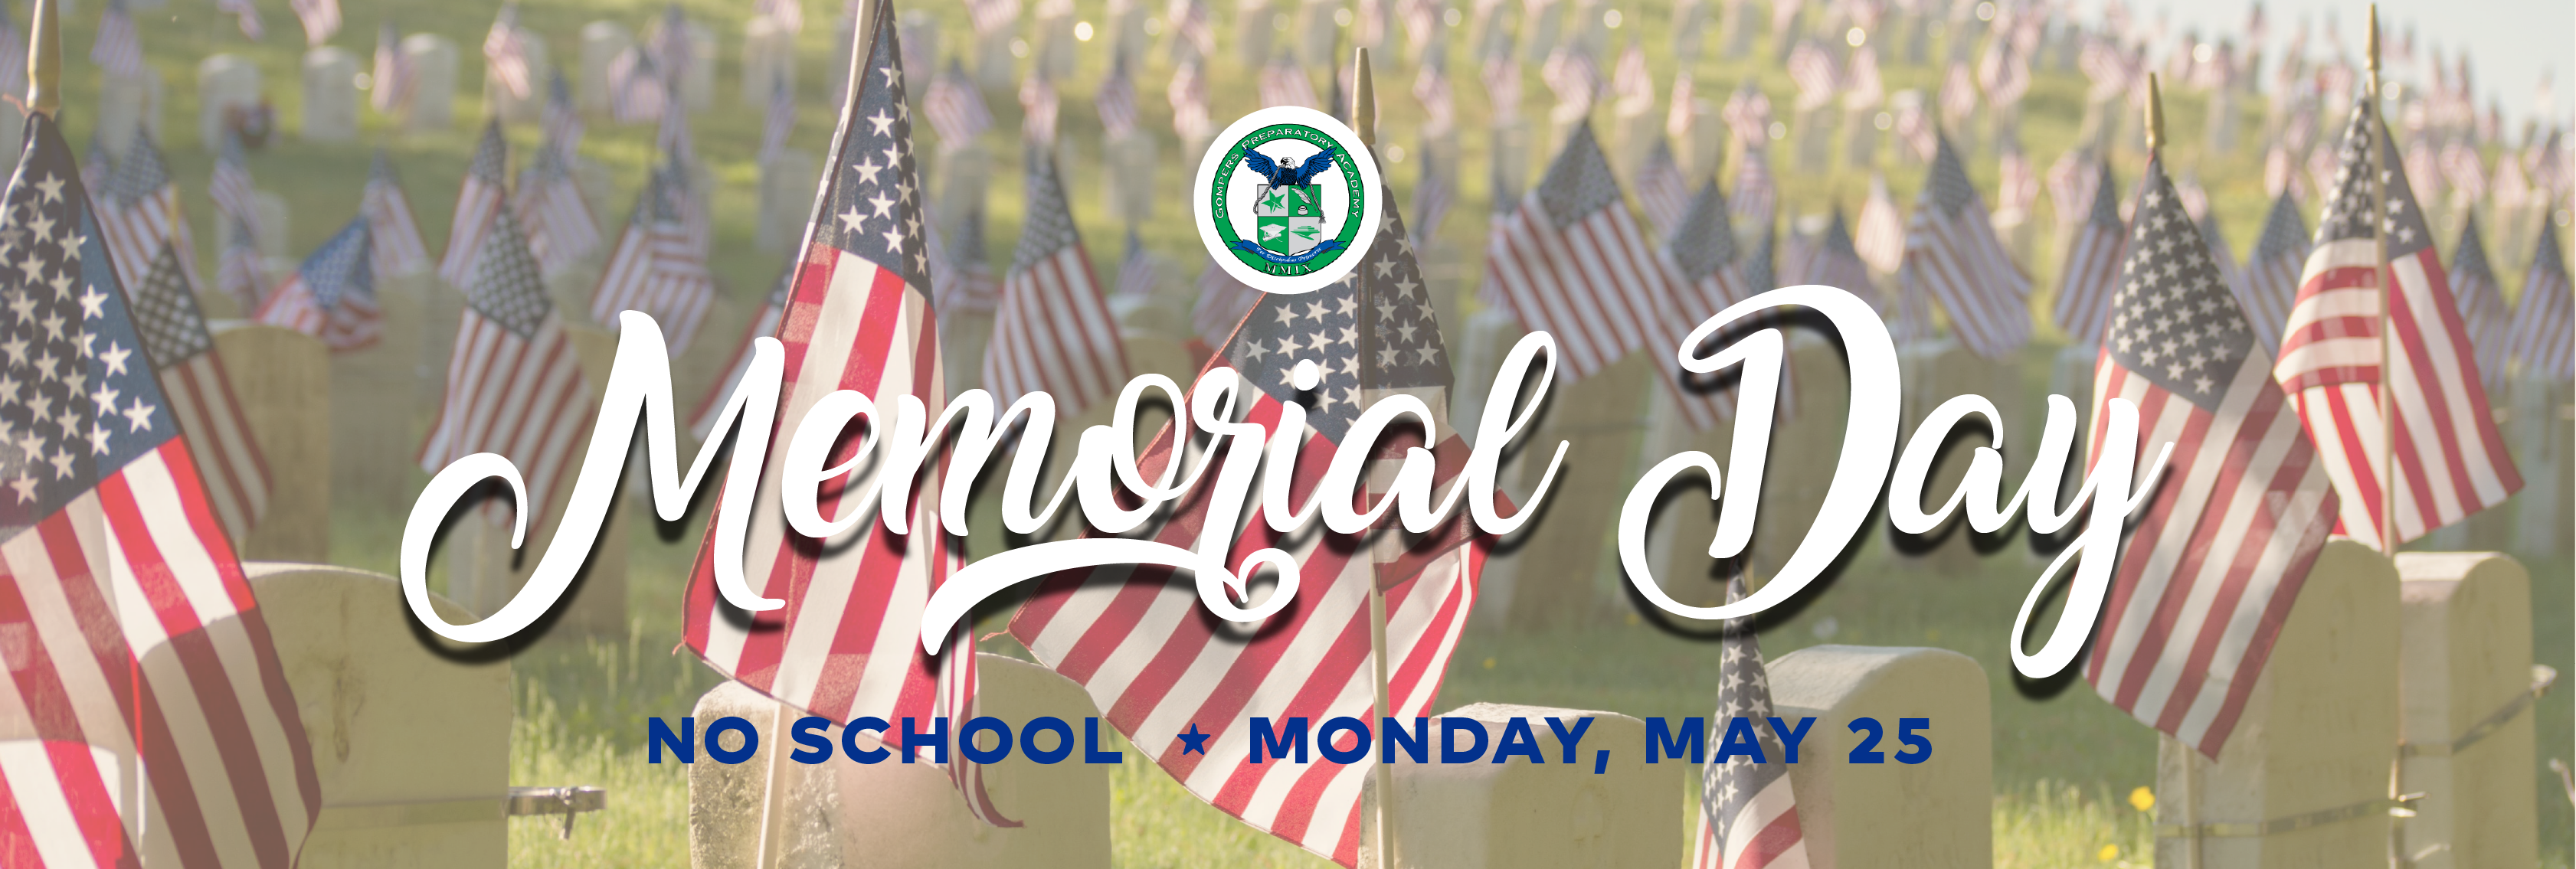 GPA Closed for Memorial Day